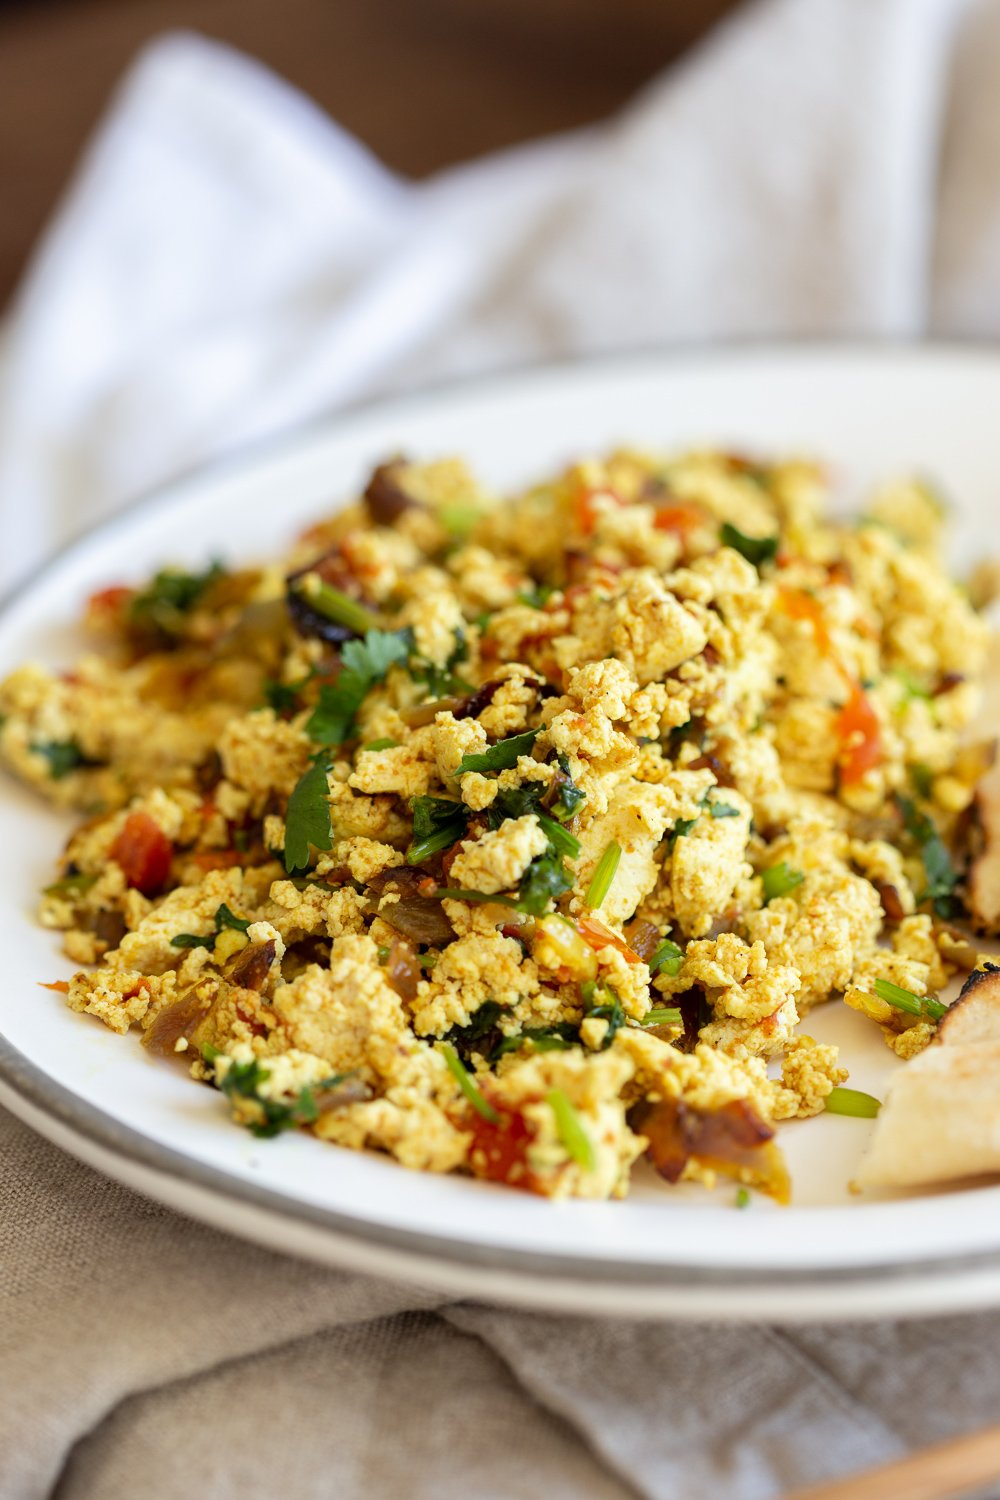 Our Vegan Tofu Bhurji in a white plate with border